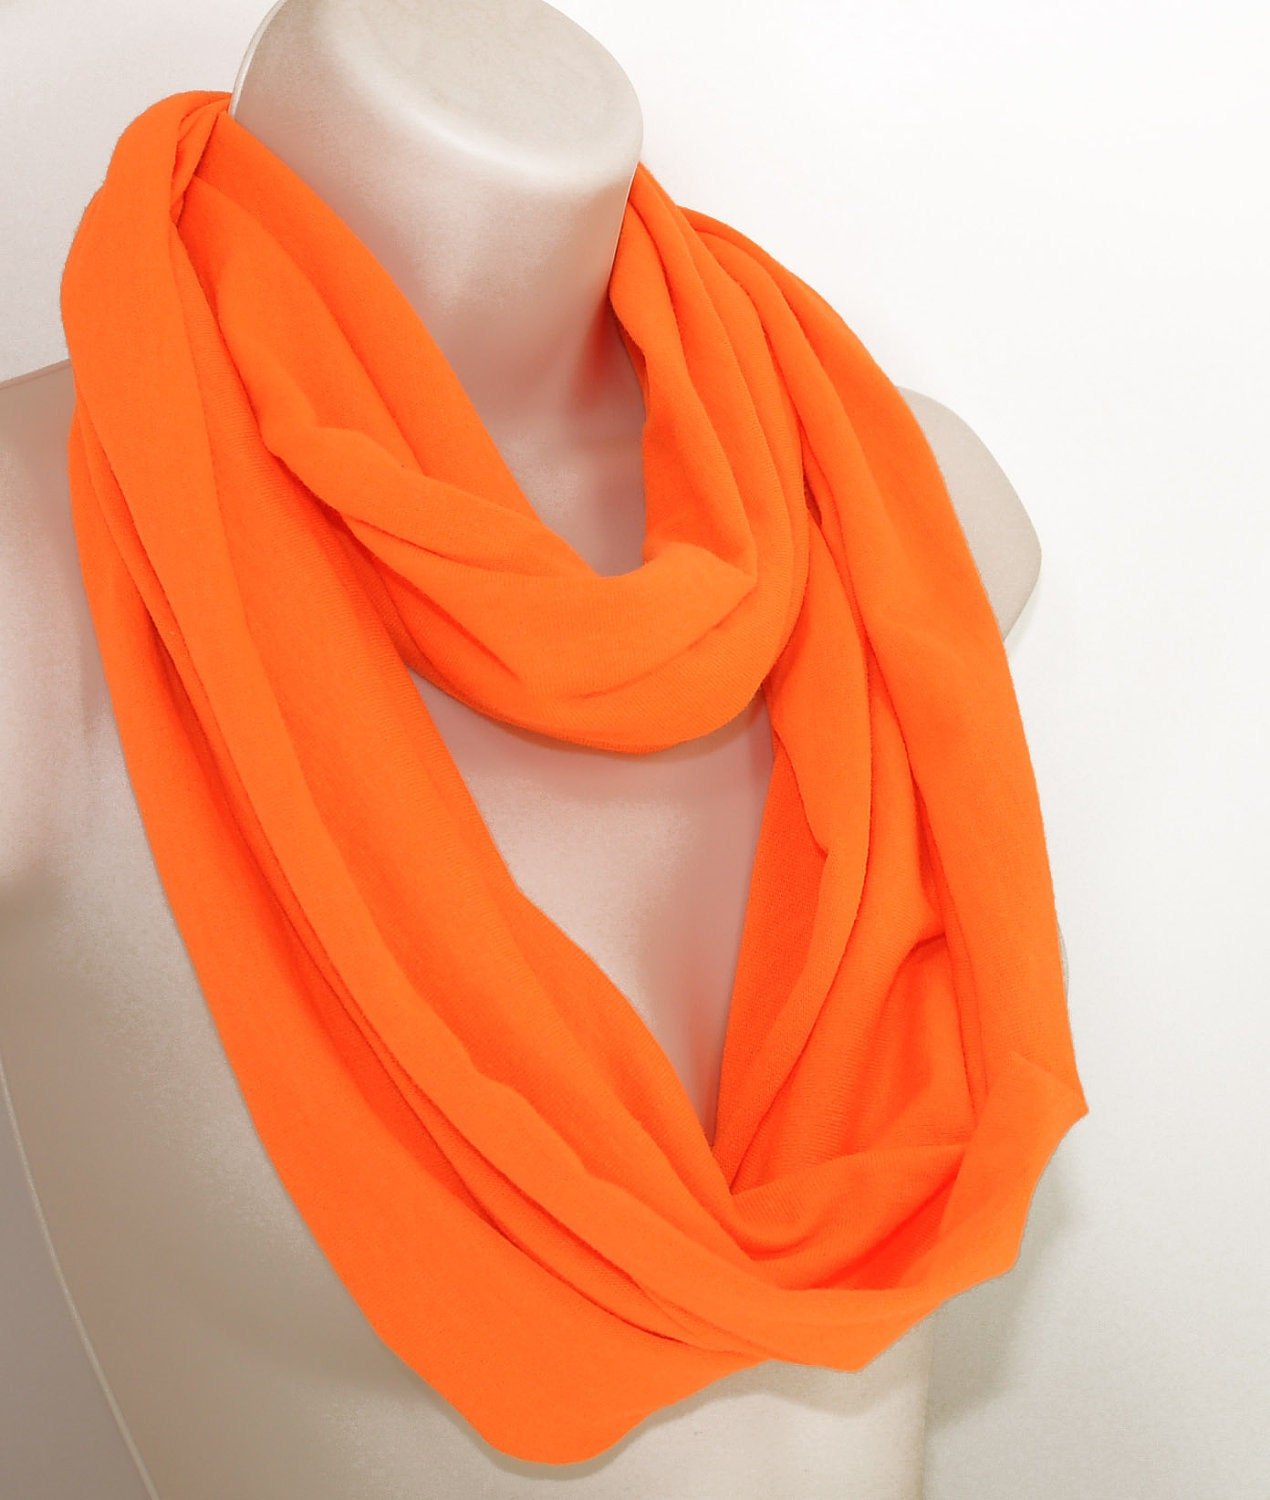 Neon Orange Tangerine Spring Infinity Scarf by ForgottenCotton on Etsy